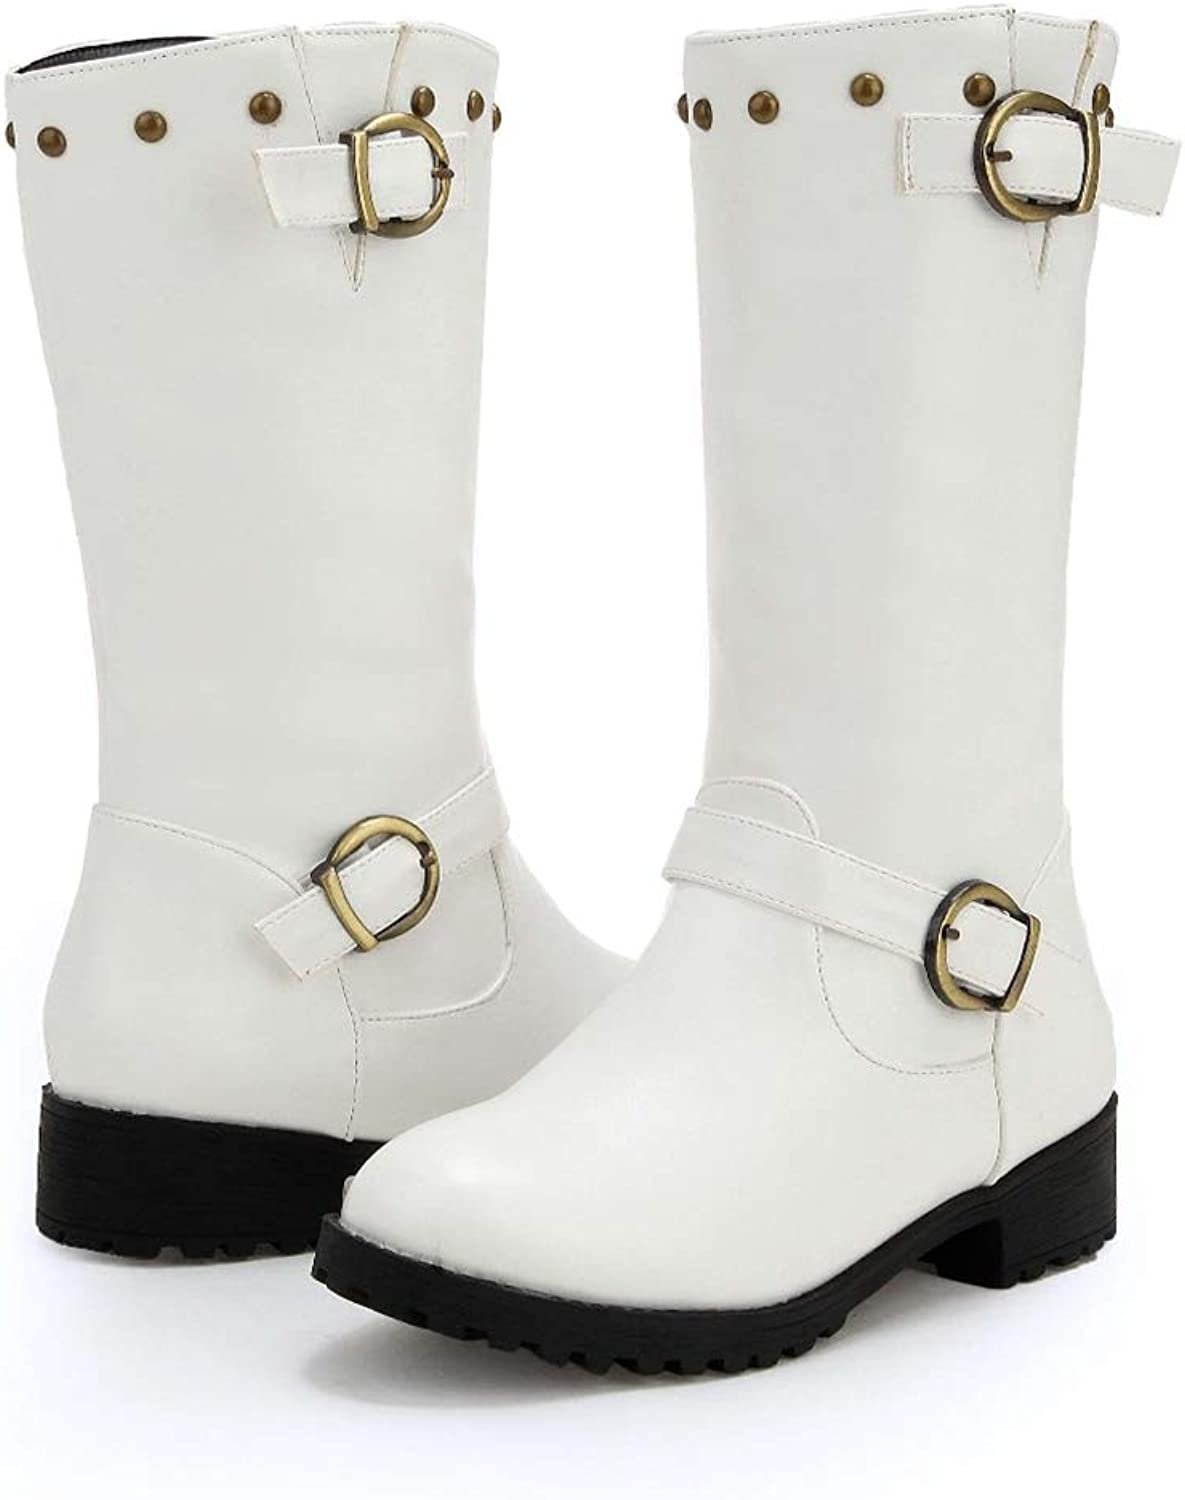 Round Toe Rivets Buckles Decoration Low Heels Solid Pu Zip Riding Simple Style Women Mid-Calf Boots